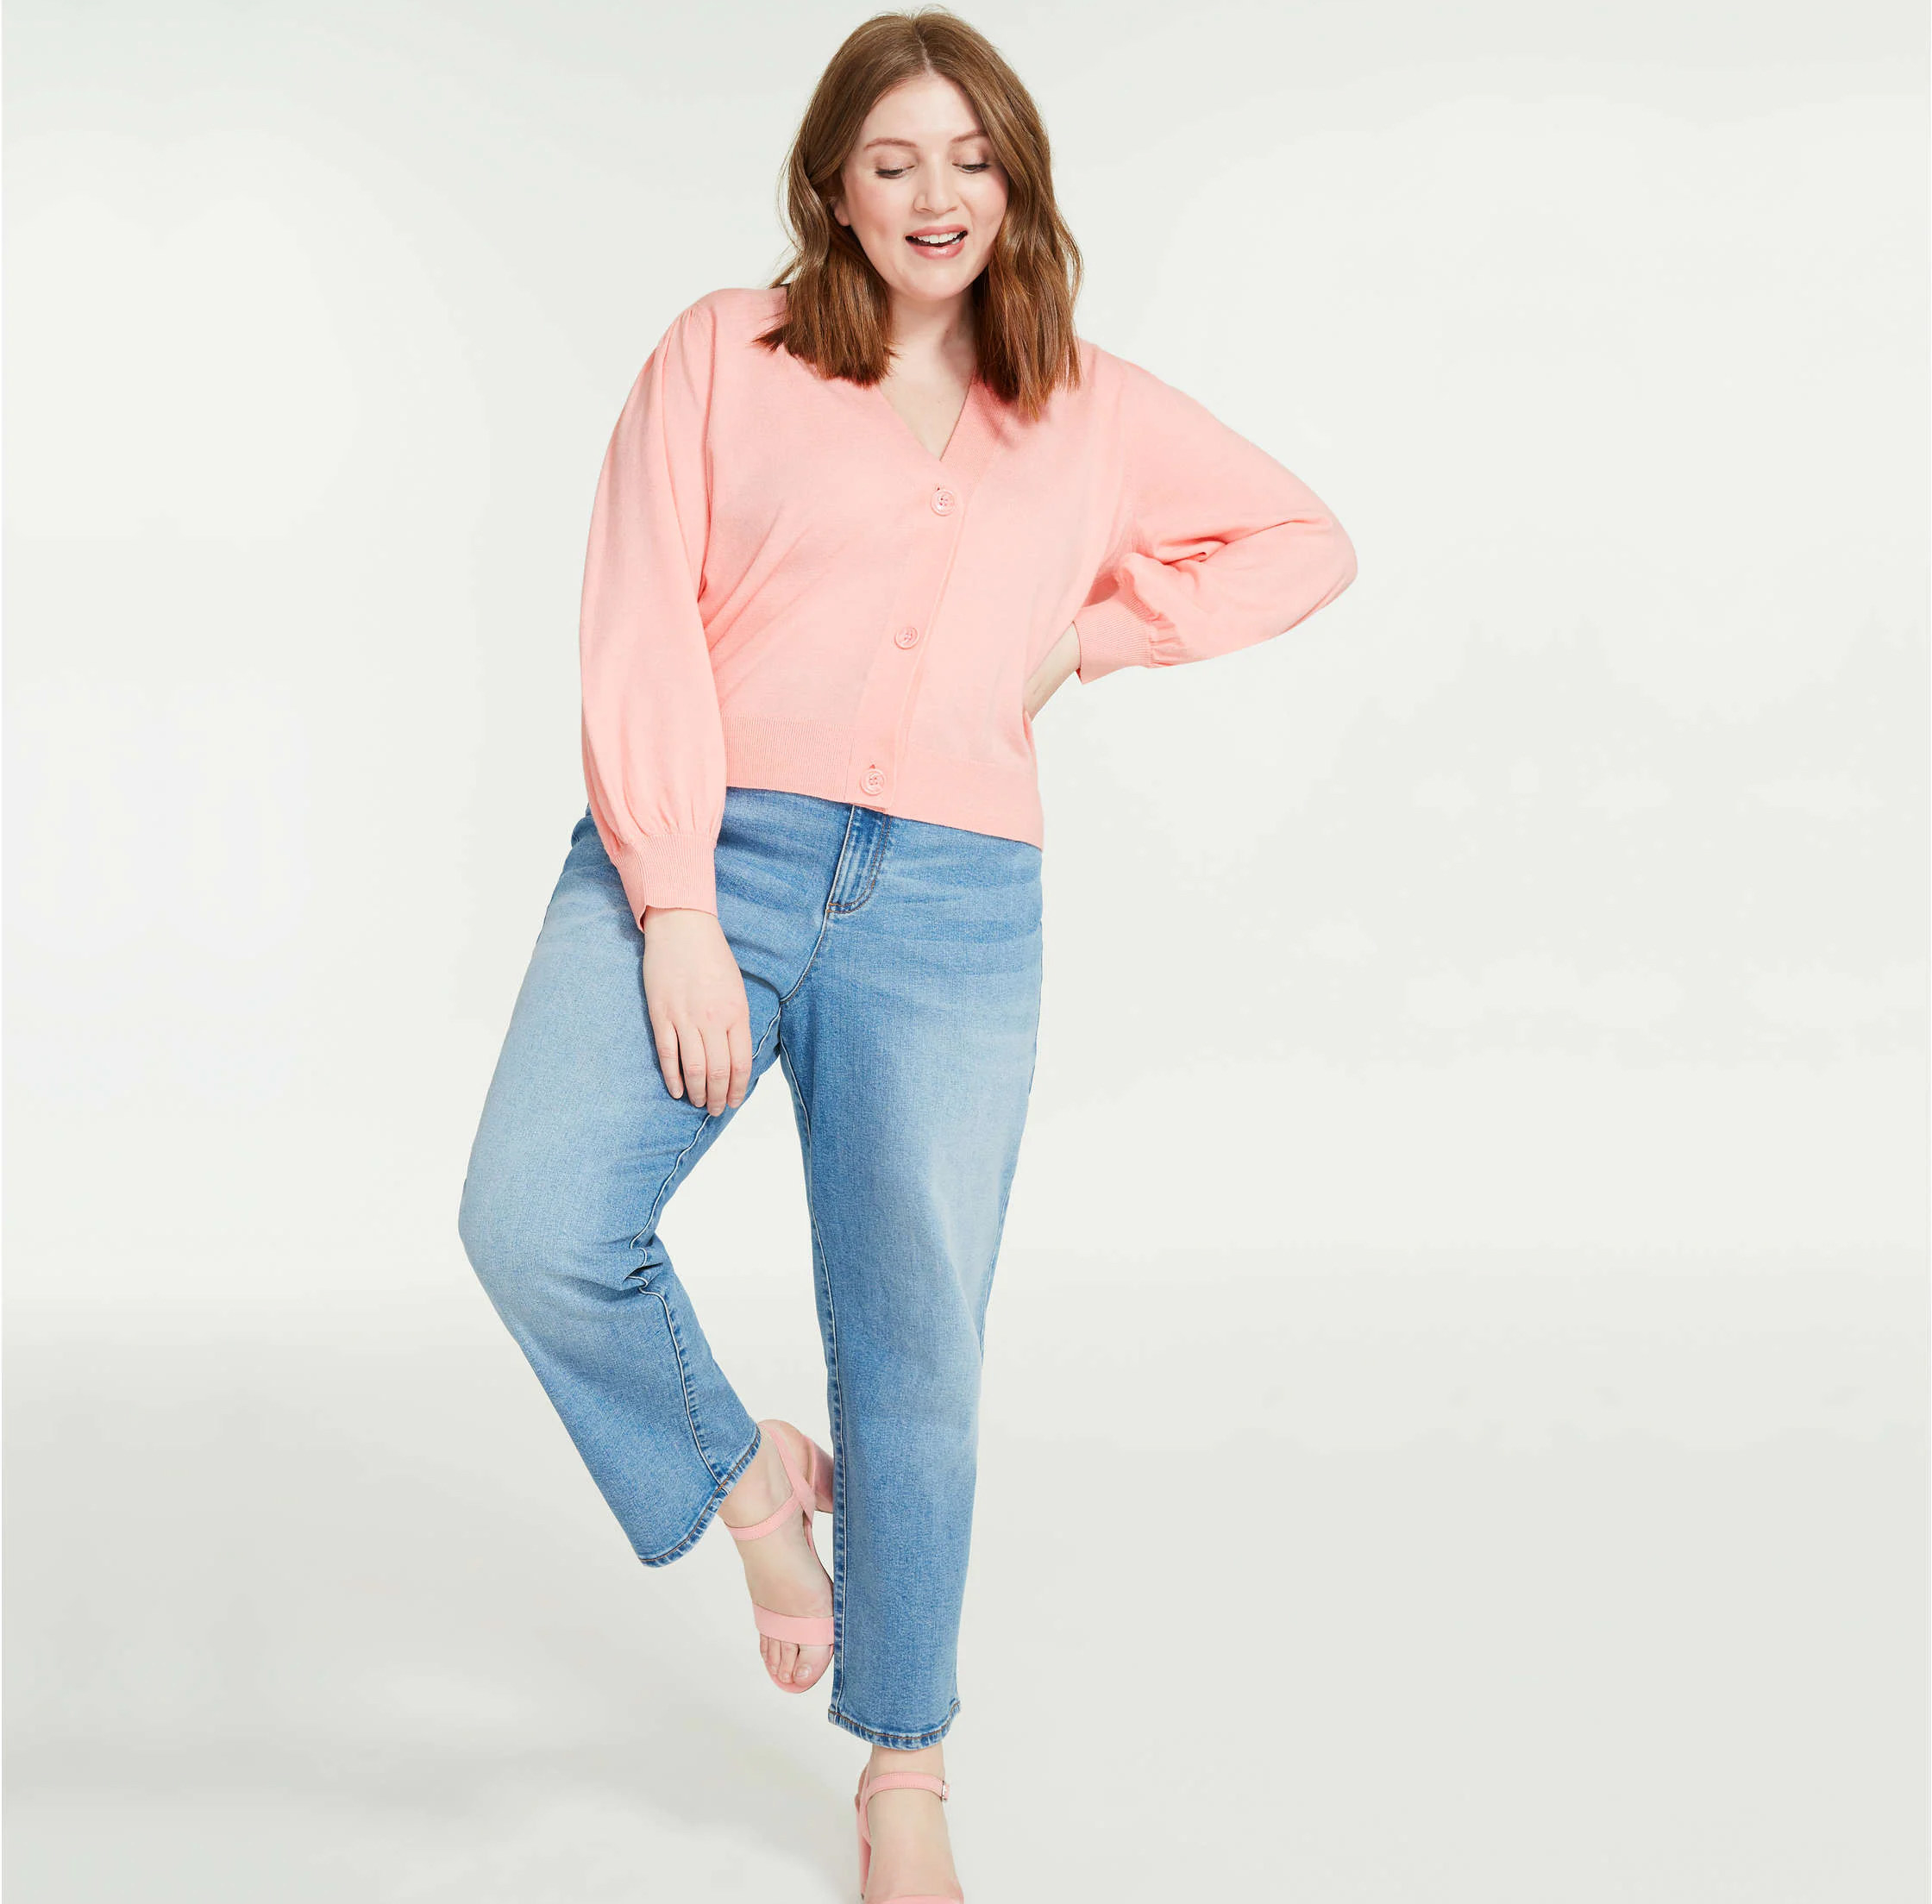 A person wearing a cardigan over a pair of jeans